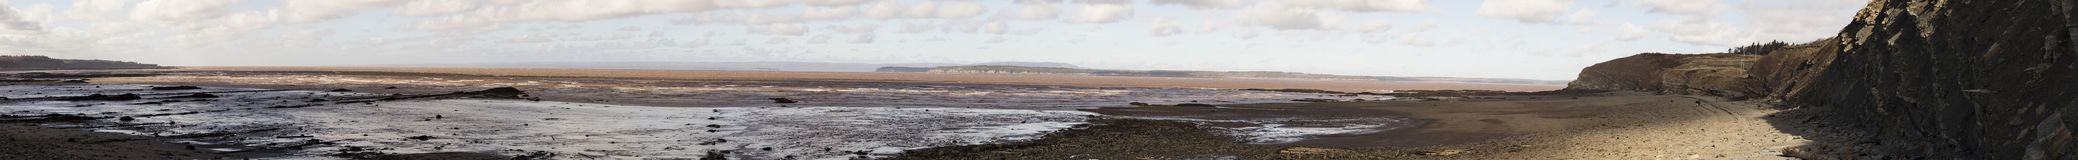 Bay of Fundy and Joggins Fossil Cliffs, Nova Scotia, Canada. Panoramic vista of Bay of Fundy at low tide at World Heritage SIte Joggins Fossil Cliffs, Nova stock photo